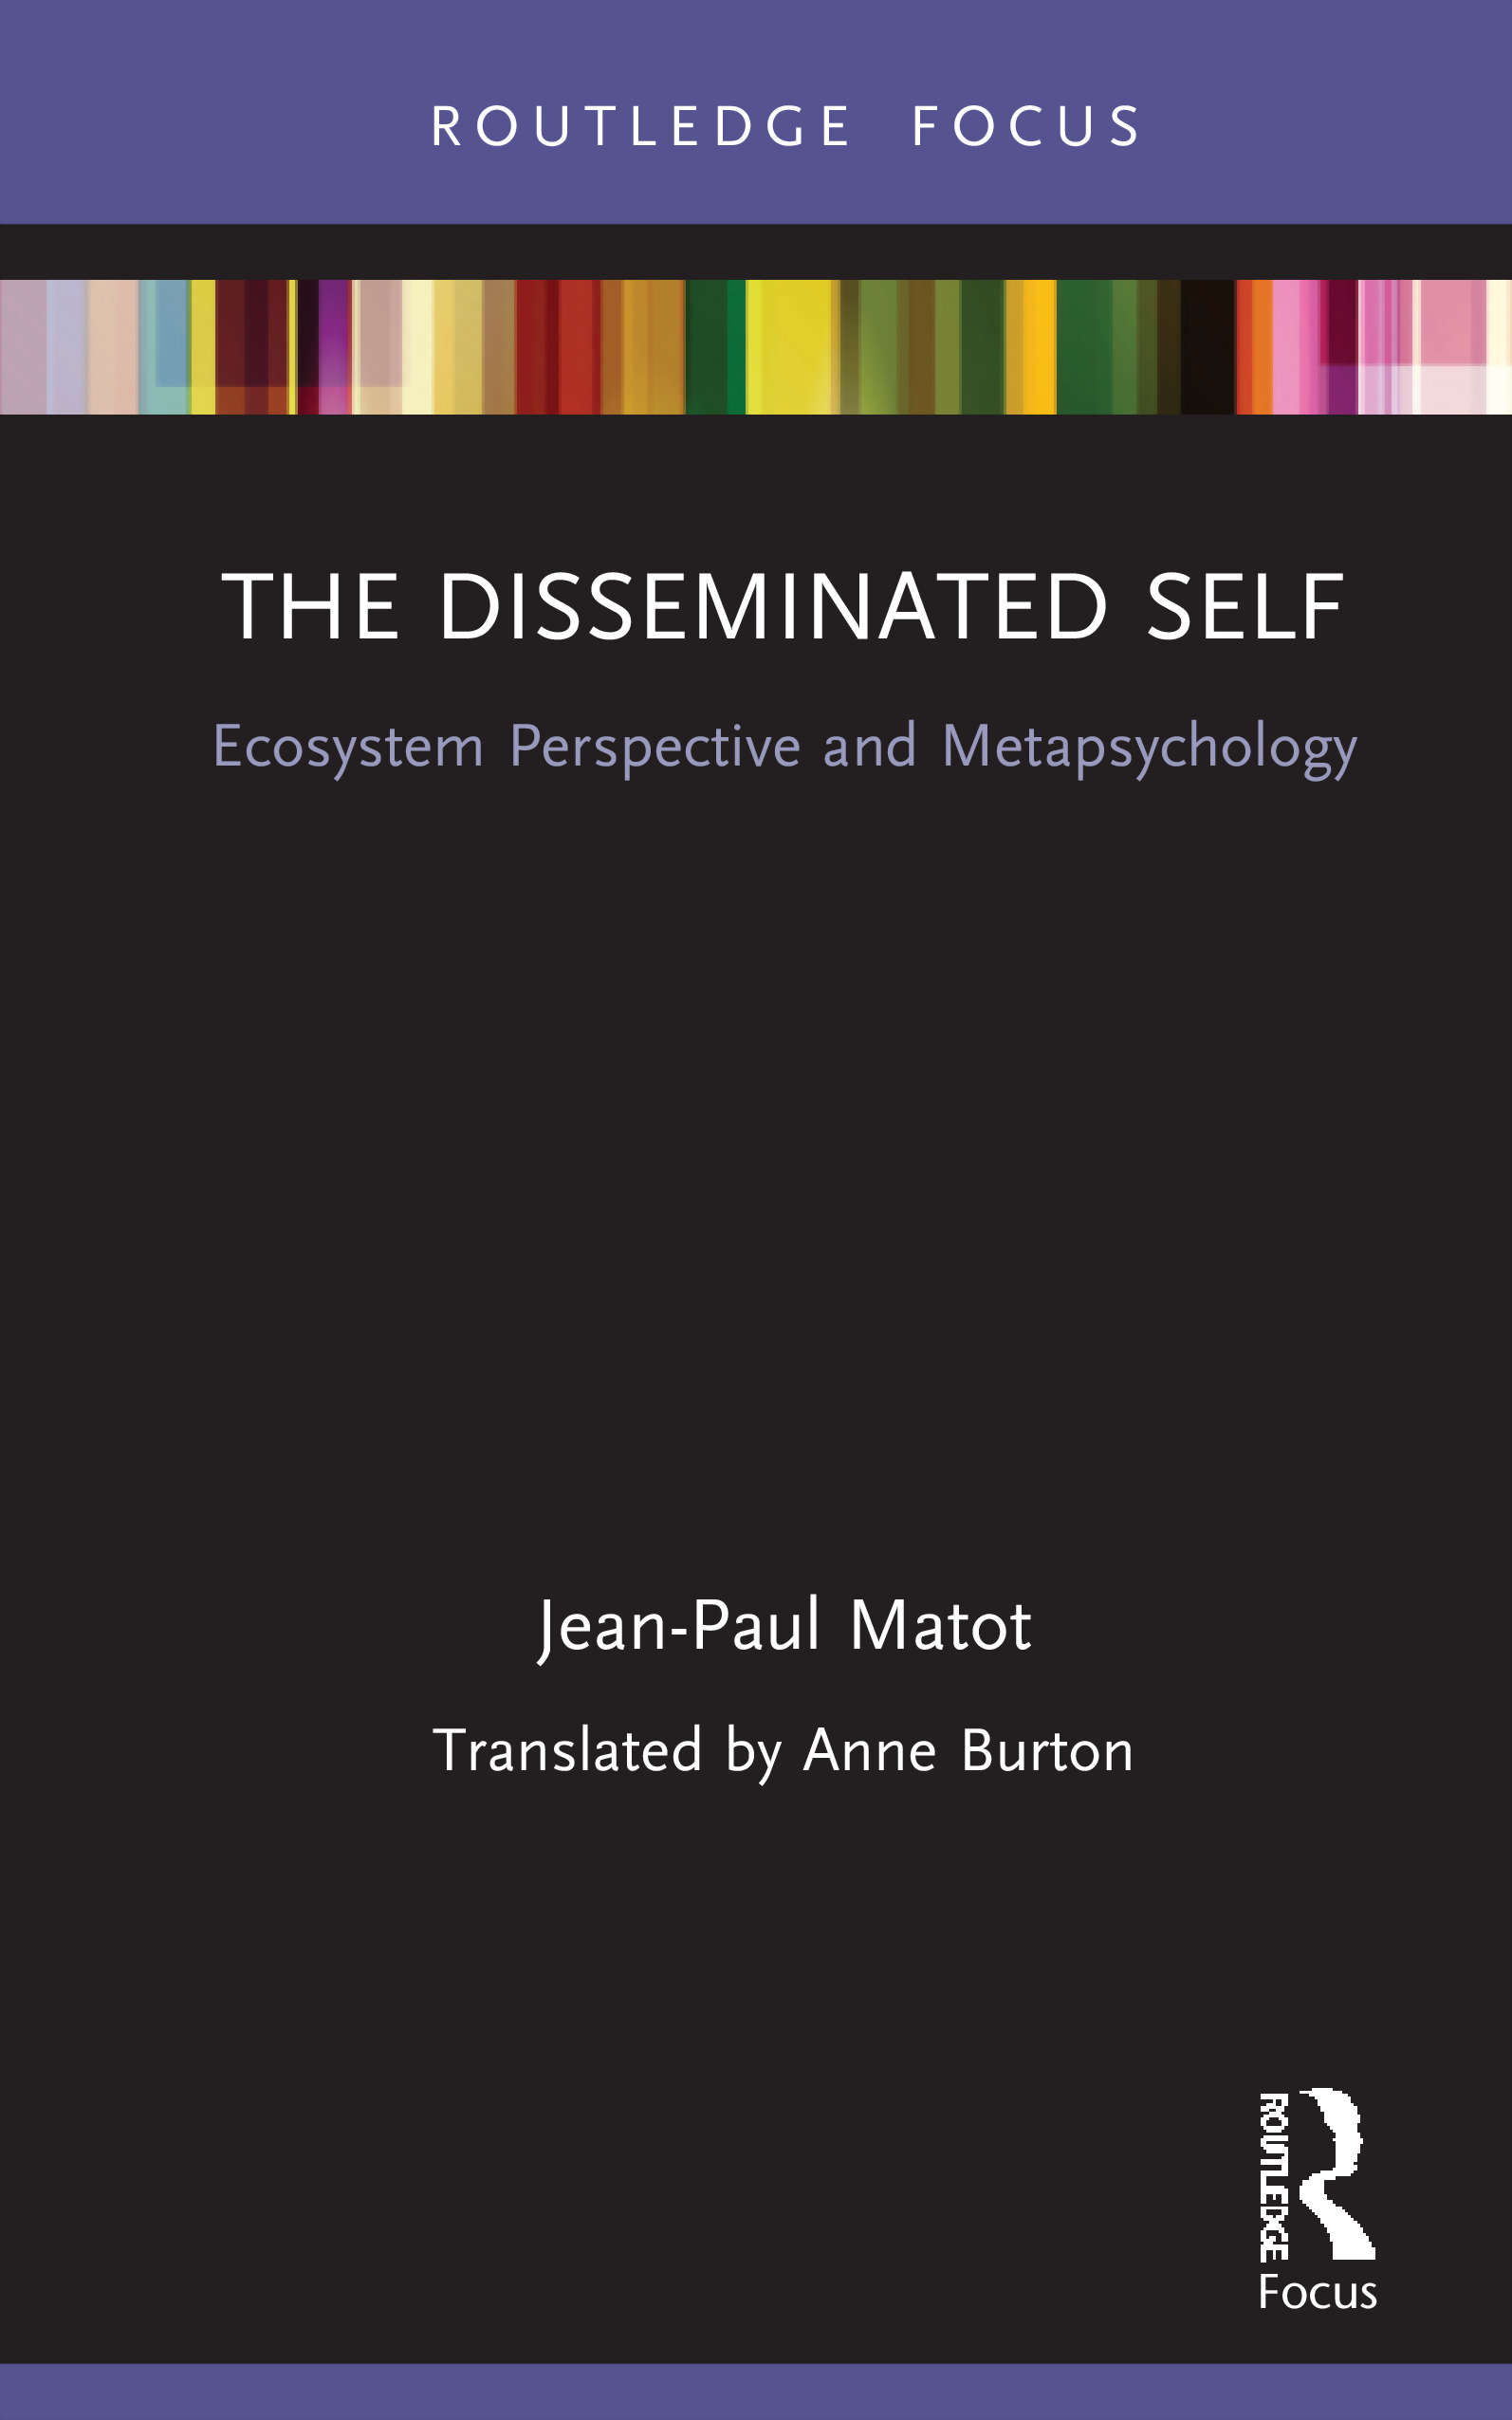 From the localization of the human psyche to the concepts of disseminated self and psychic envelopes